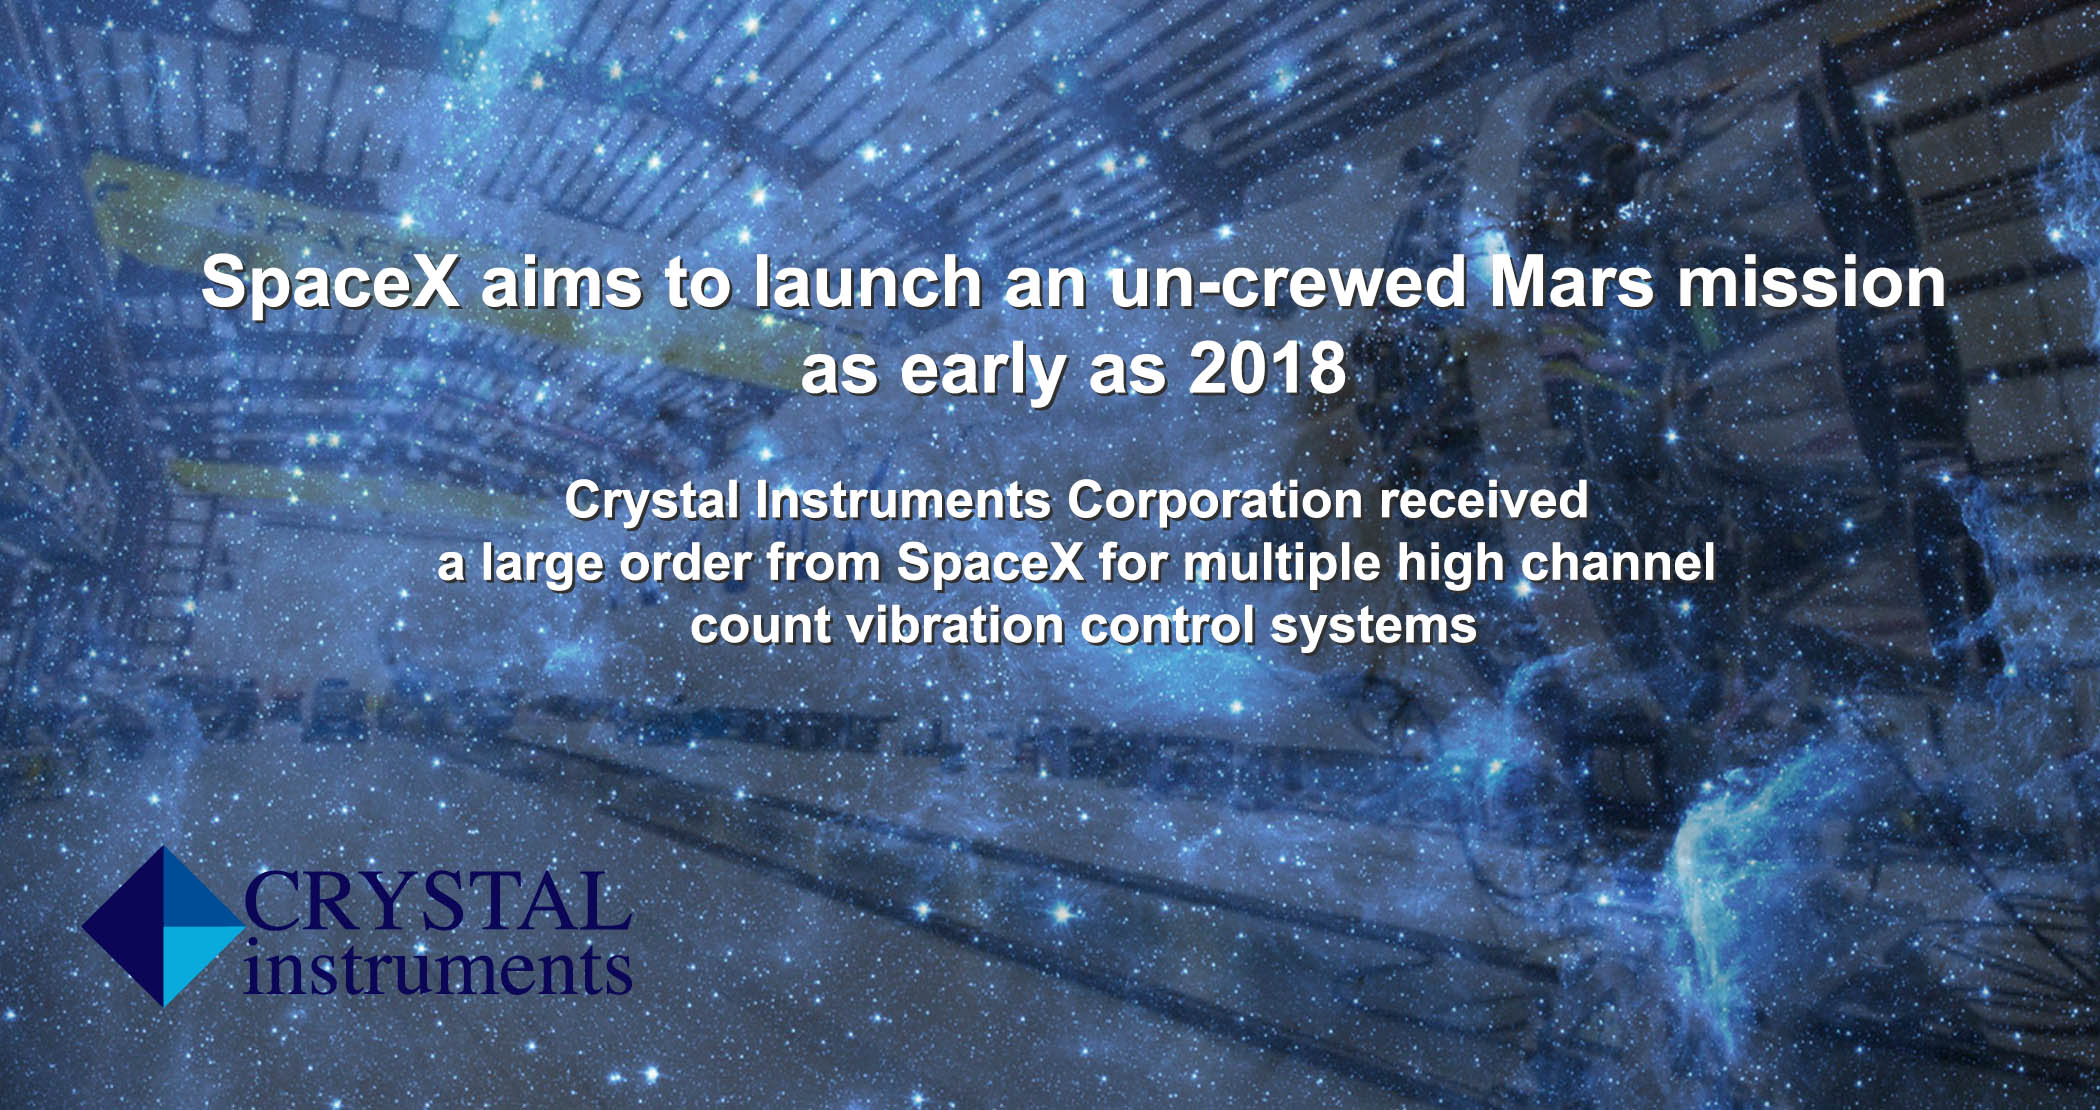 Crystal Instruments Multiple vibration control systems for SpaceX